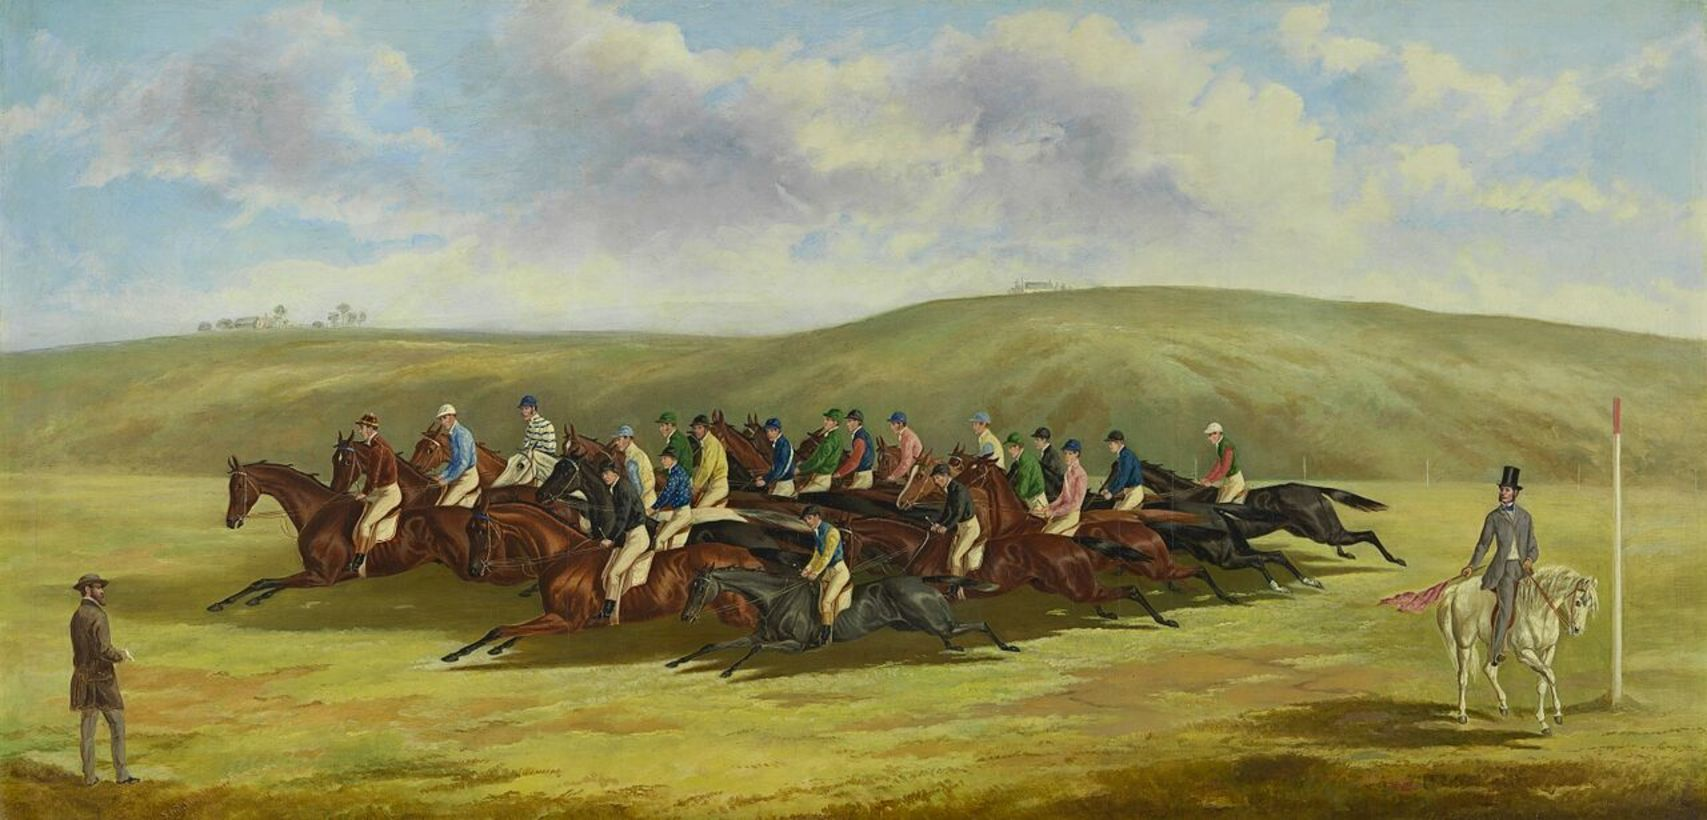 Frederick Woodhouse Senior, 1820–1909. The Cup of 1862-1863, oil on canvas. Donated by Mr F. W. Prell, 1889 Victoria Racing Club Collection. The National Gallery of Victoria, Author provided